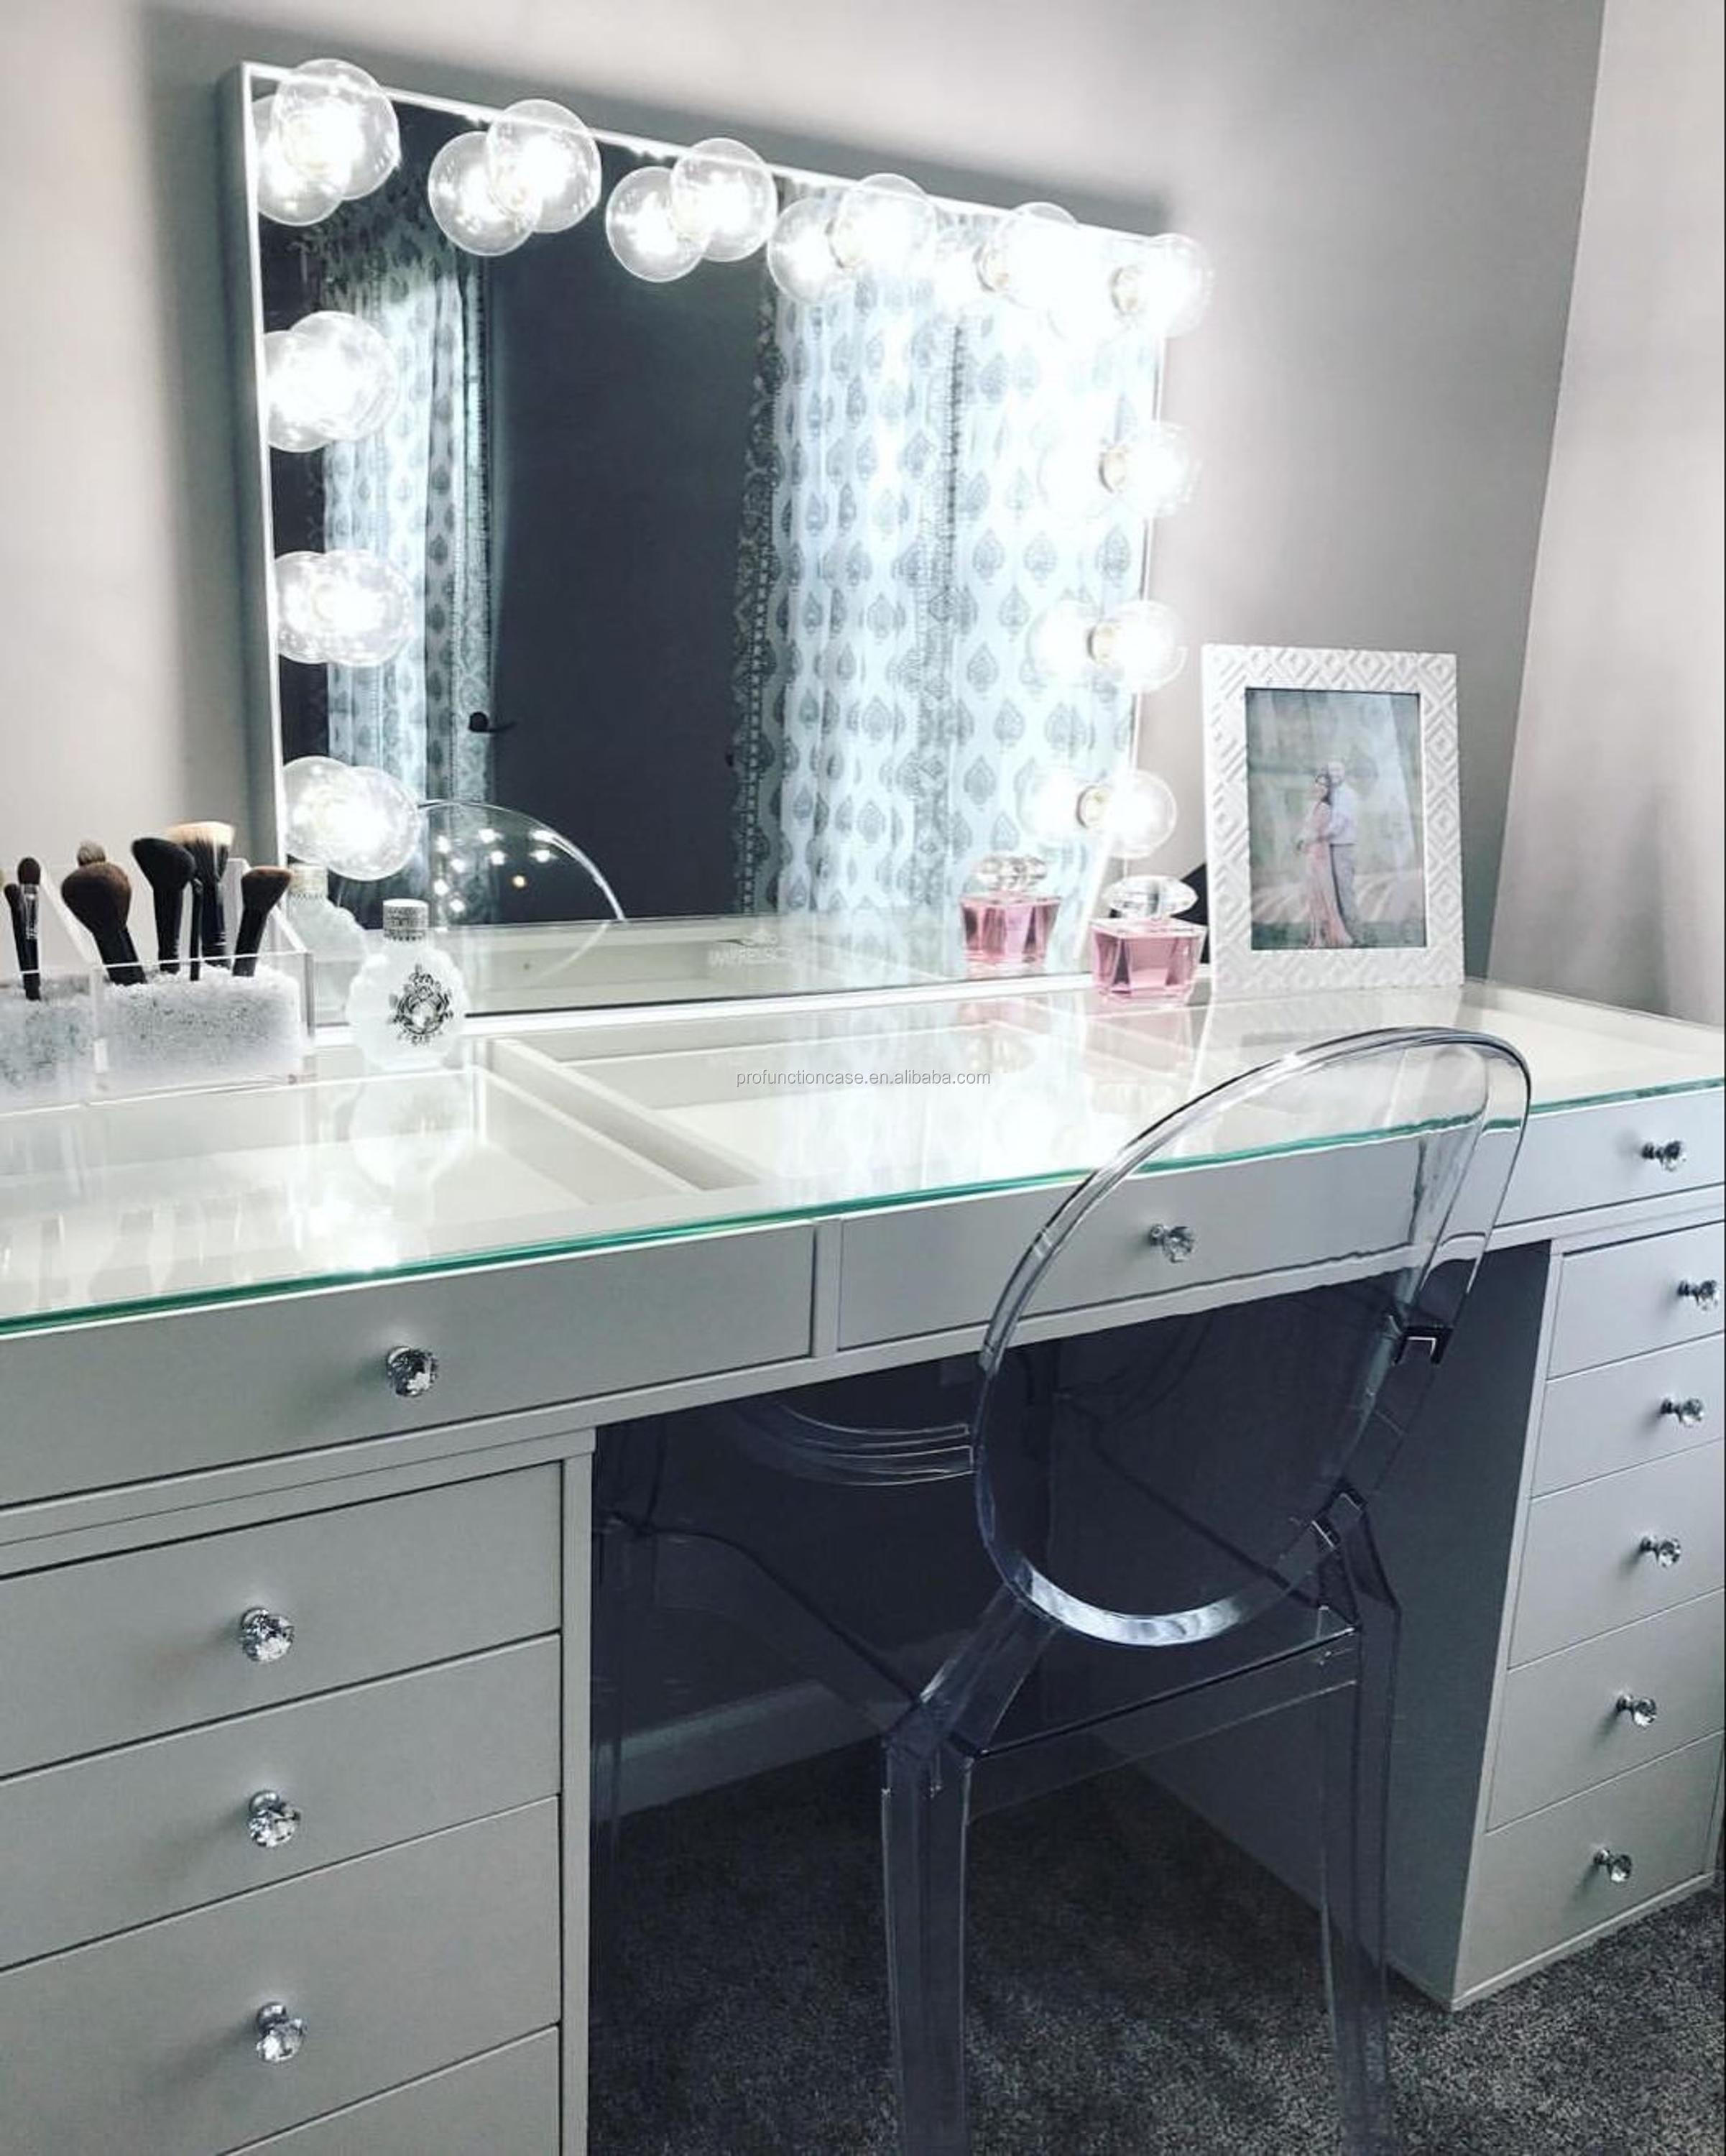 with modern home bathroom lowes mirror size ideas farmhouse vanity full target of lights lighting depot makeup chrome light